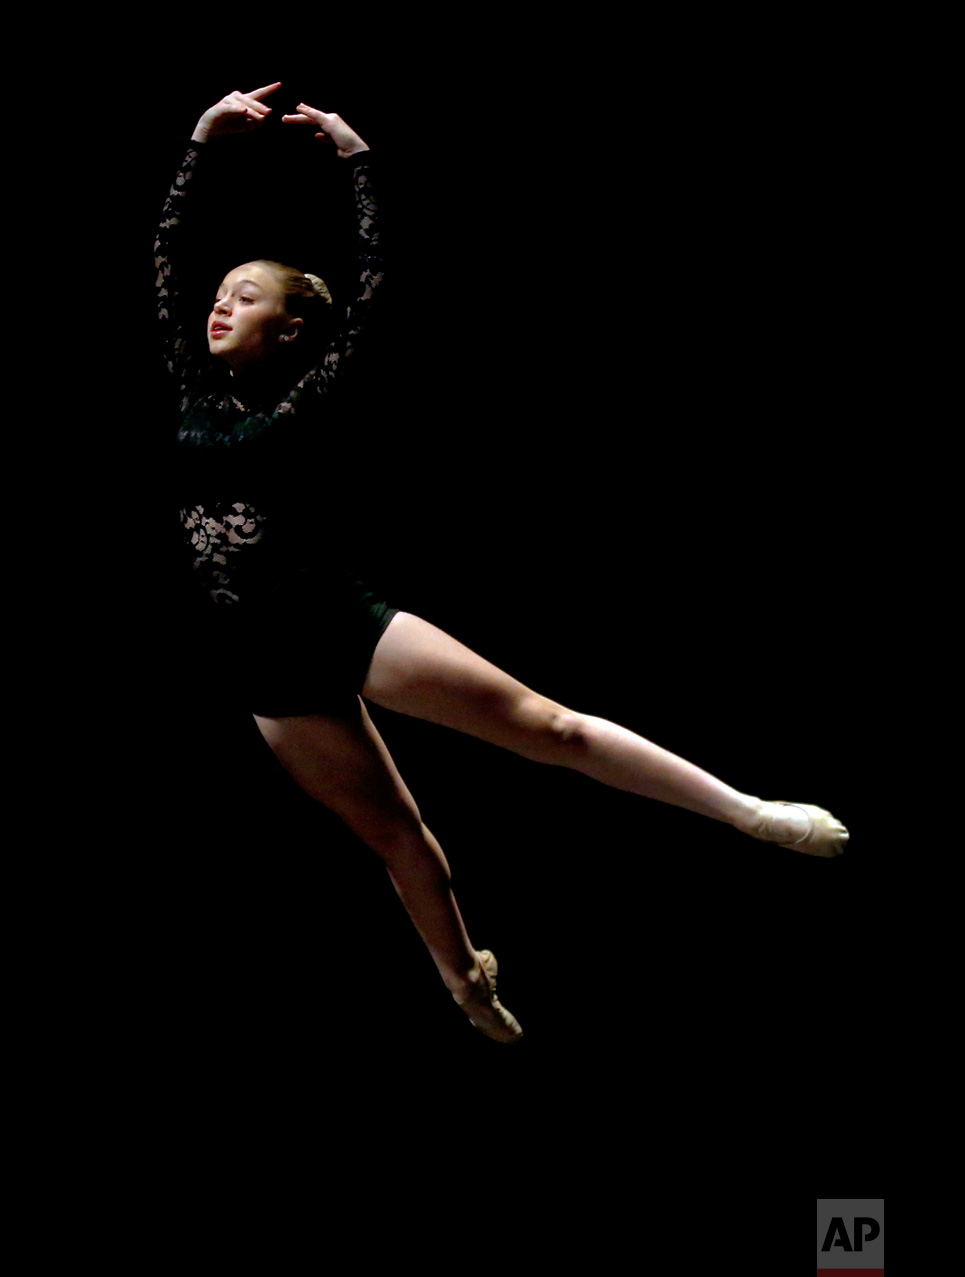 Jordan Dawson performs in the Youth America Grand Prix regional semi-finals at Dominican University Performing Arts Center, Friday, Feb. 3, 2017, in River Forest, Ill. Chicago is one of the 12 cities in North America selecting dancers who will compete in New York in April. (AP Photo/Nam Y. Huh)